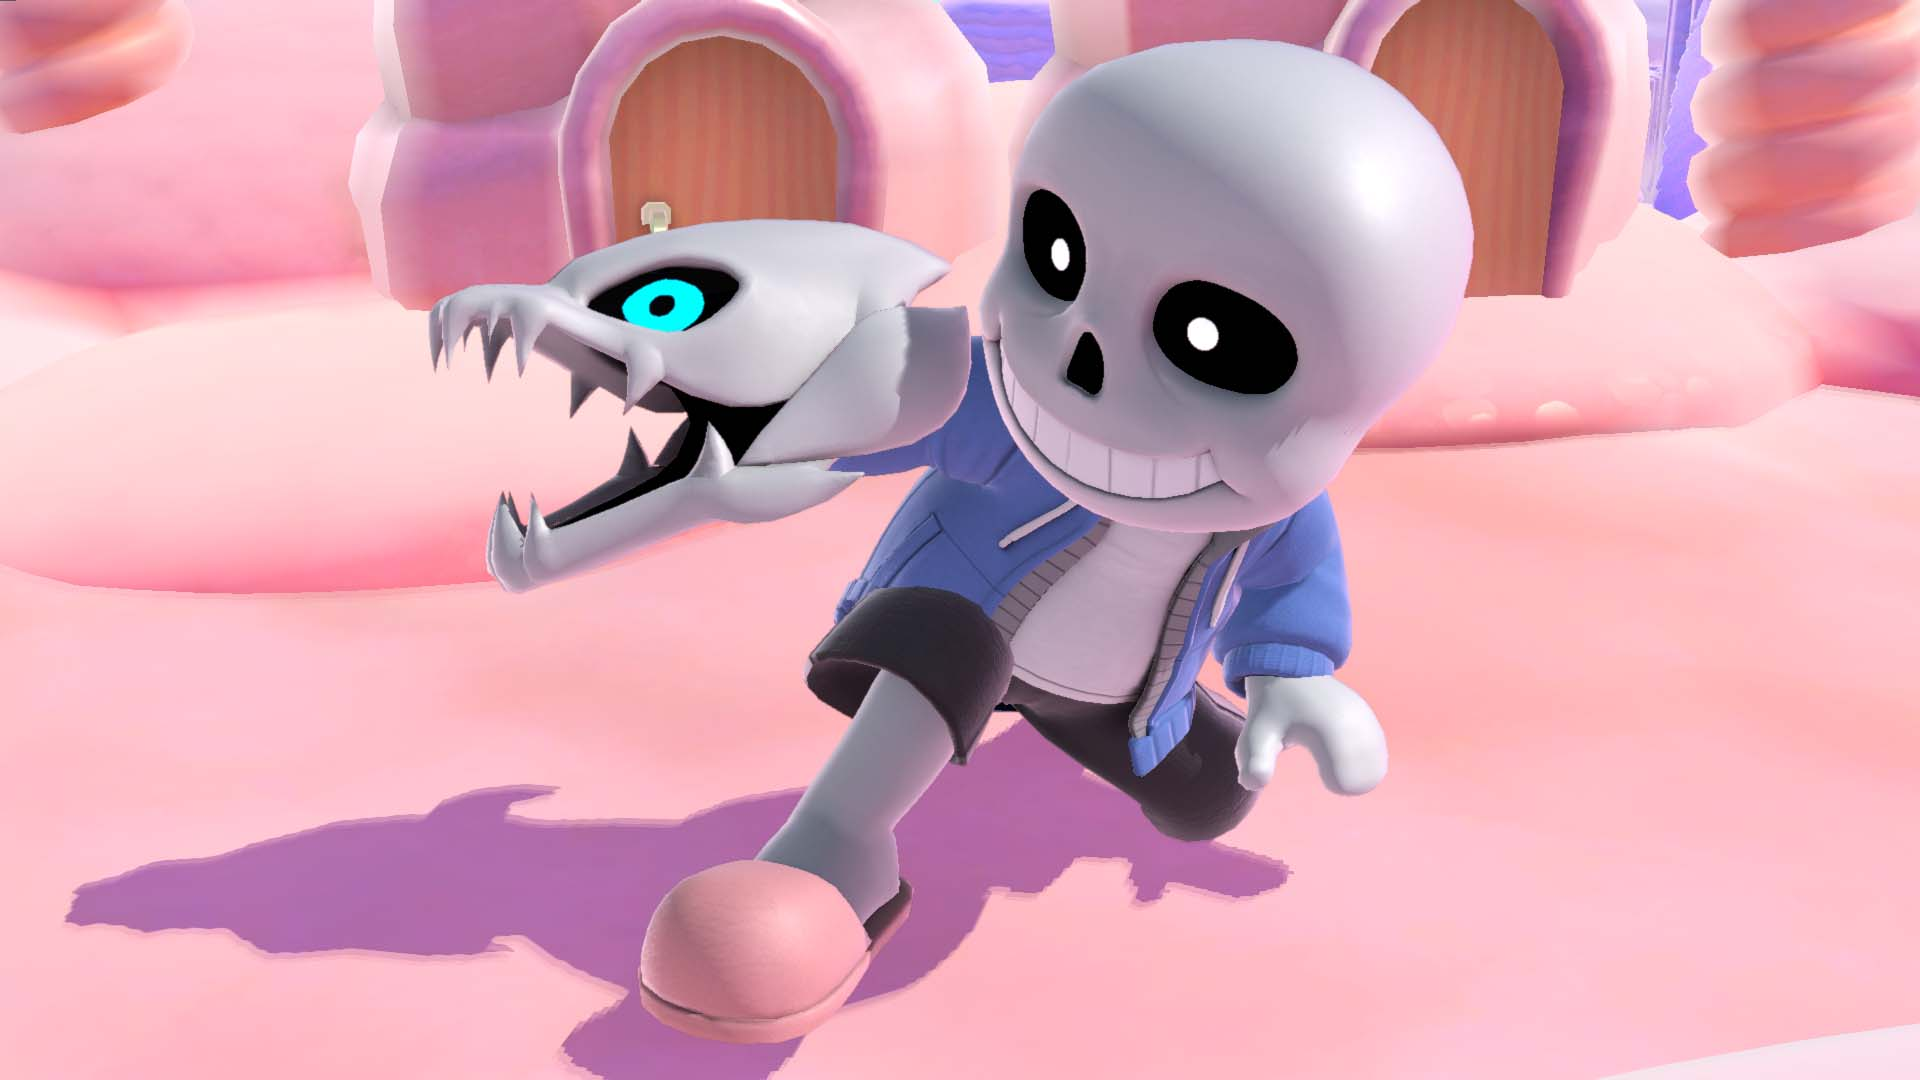 Toby Fox comments on Undertale's Sans getting a Mii costume in Smash Bros. Ultimate, meeting with Sakurai